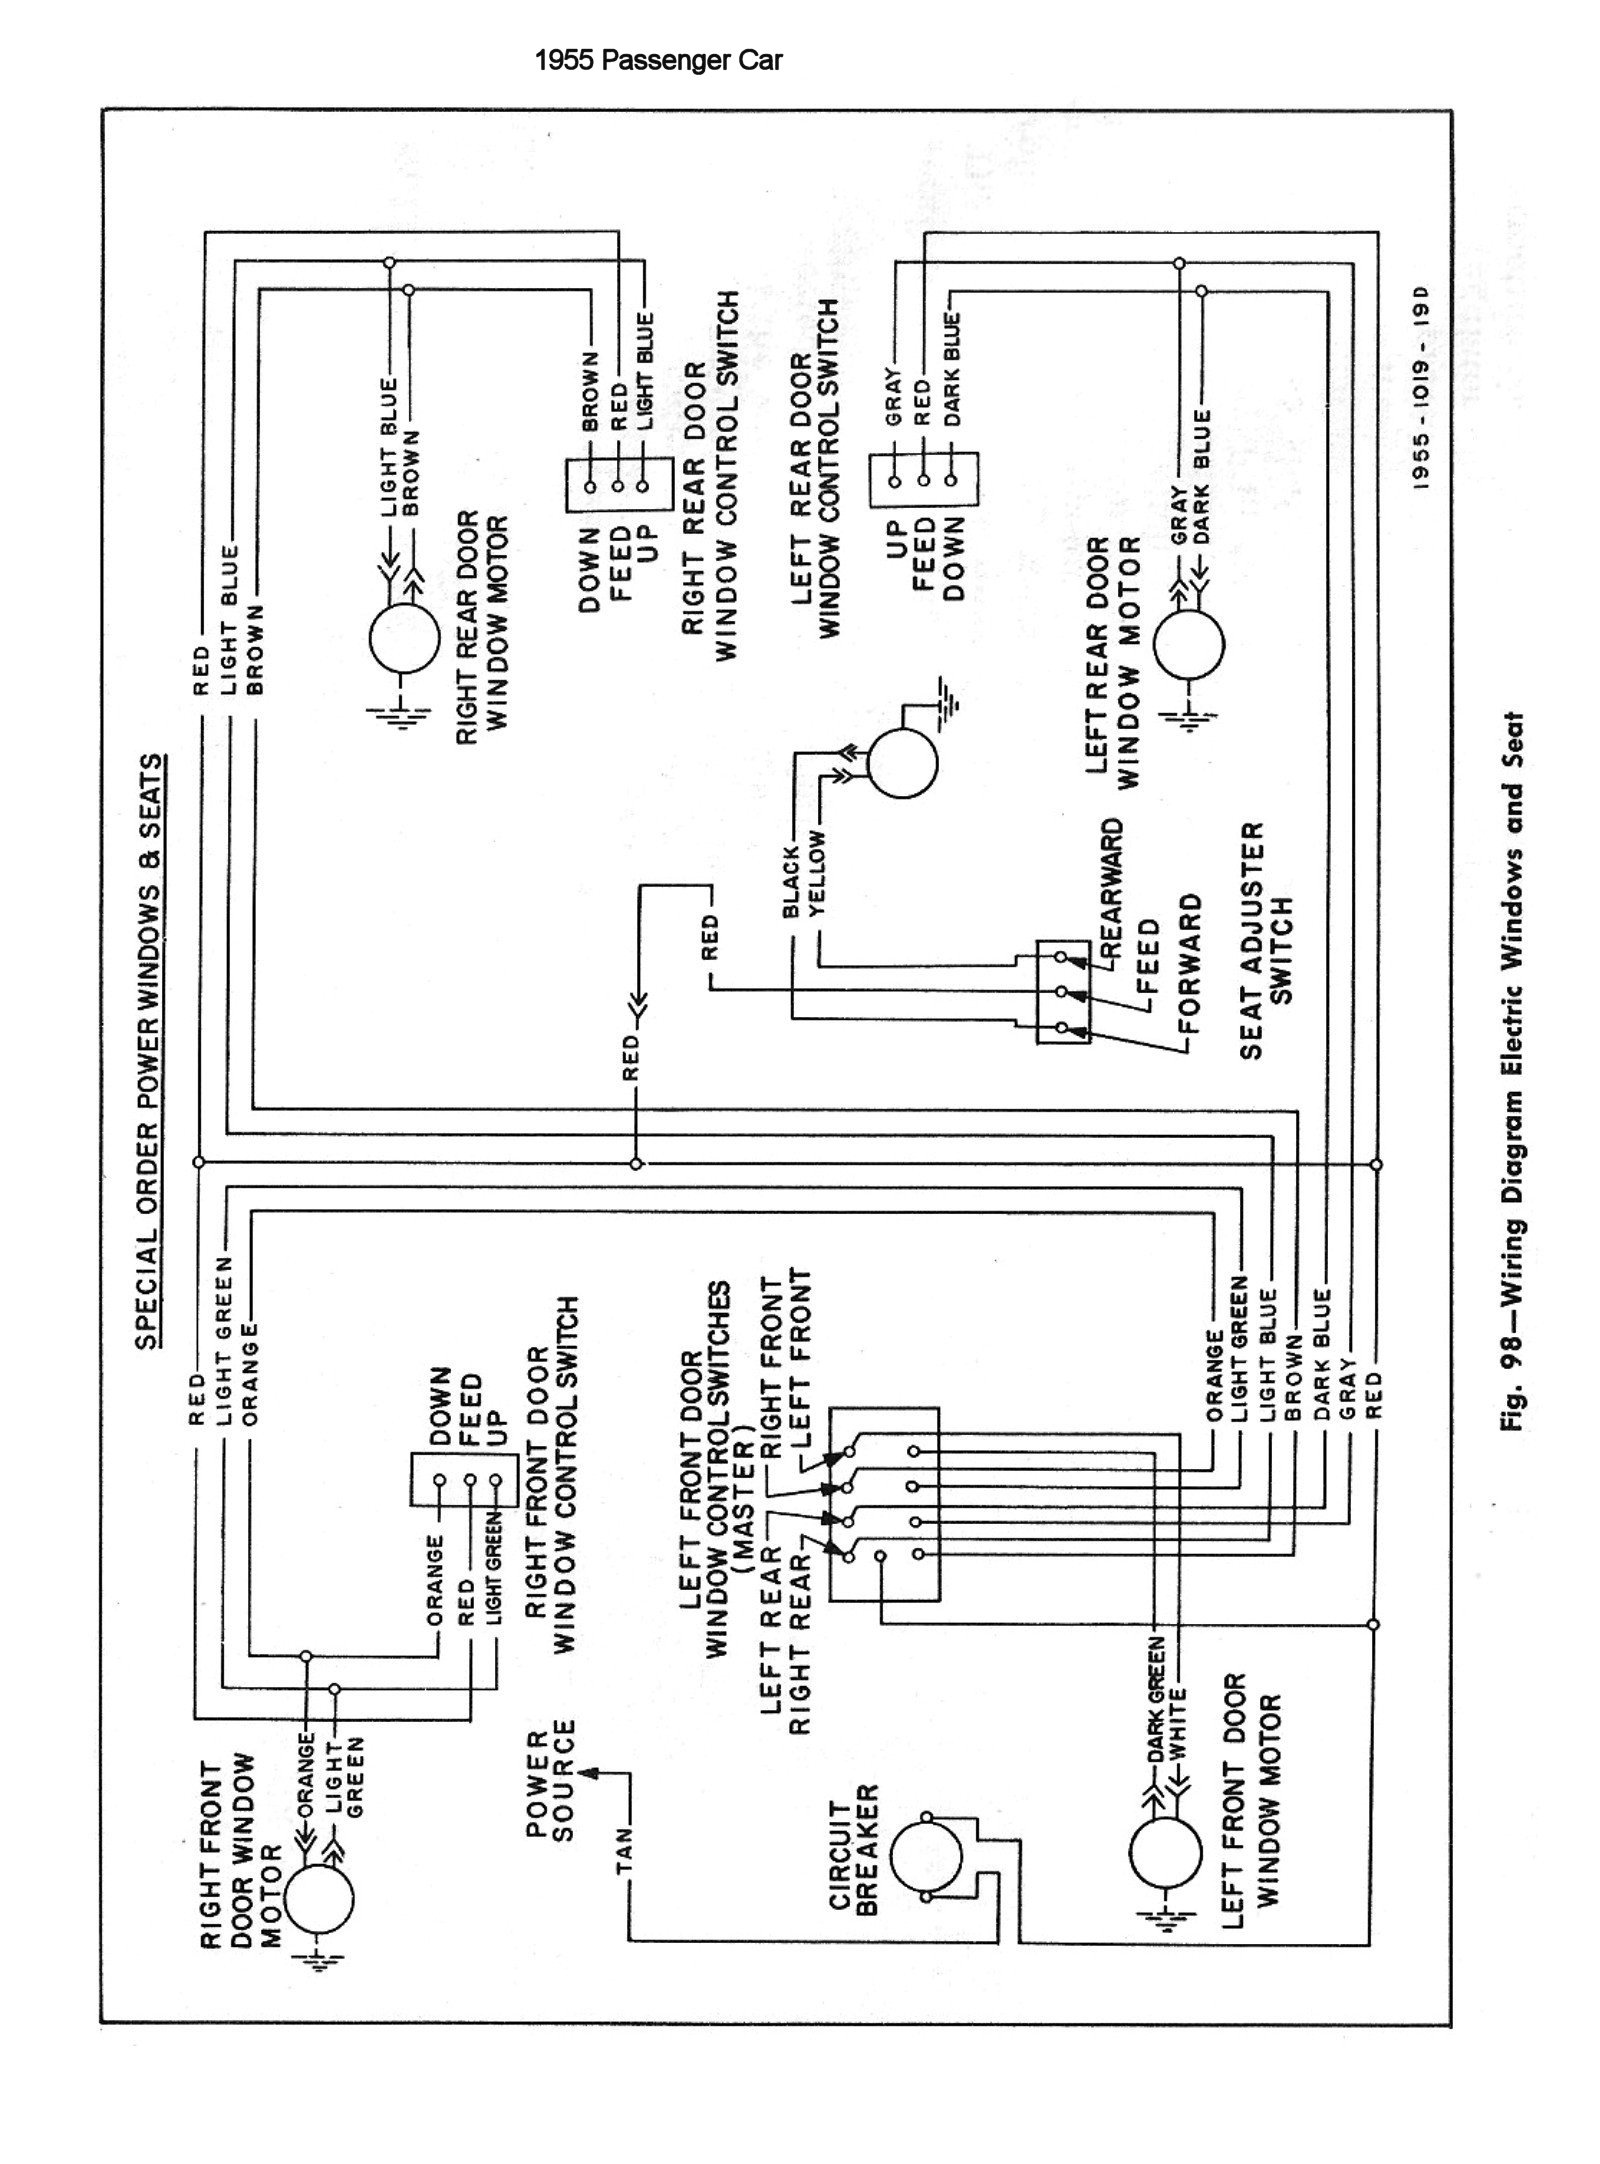 55csm0146 chevy wiring diagrams Basic Engine Wiring Diagram Chevy at suagrazia.org